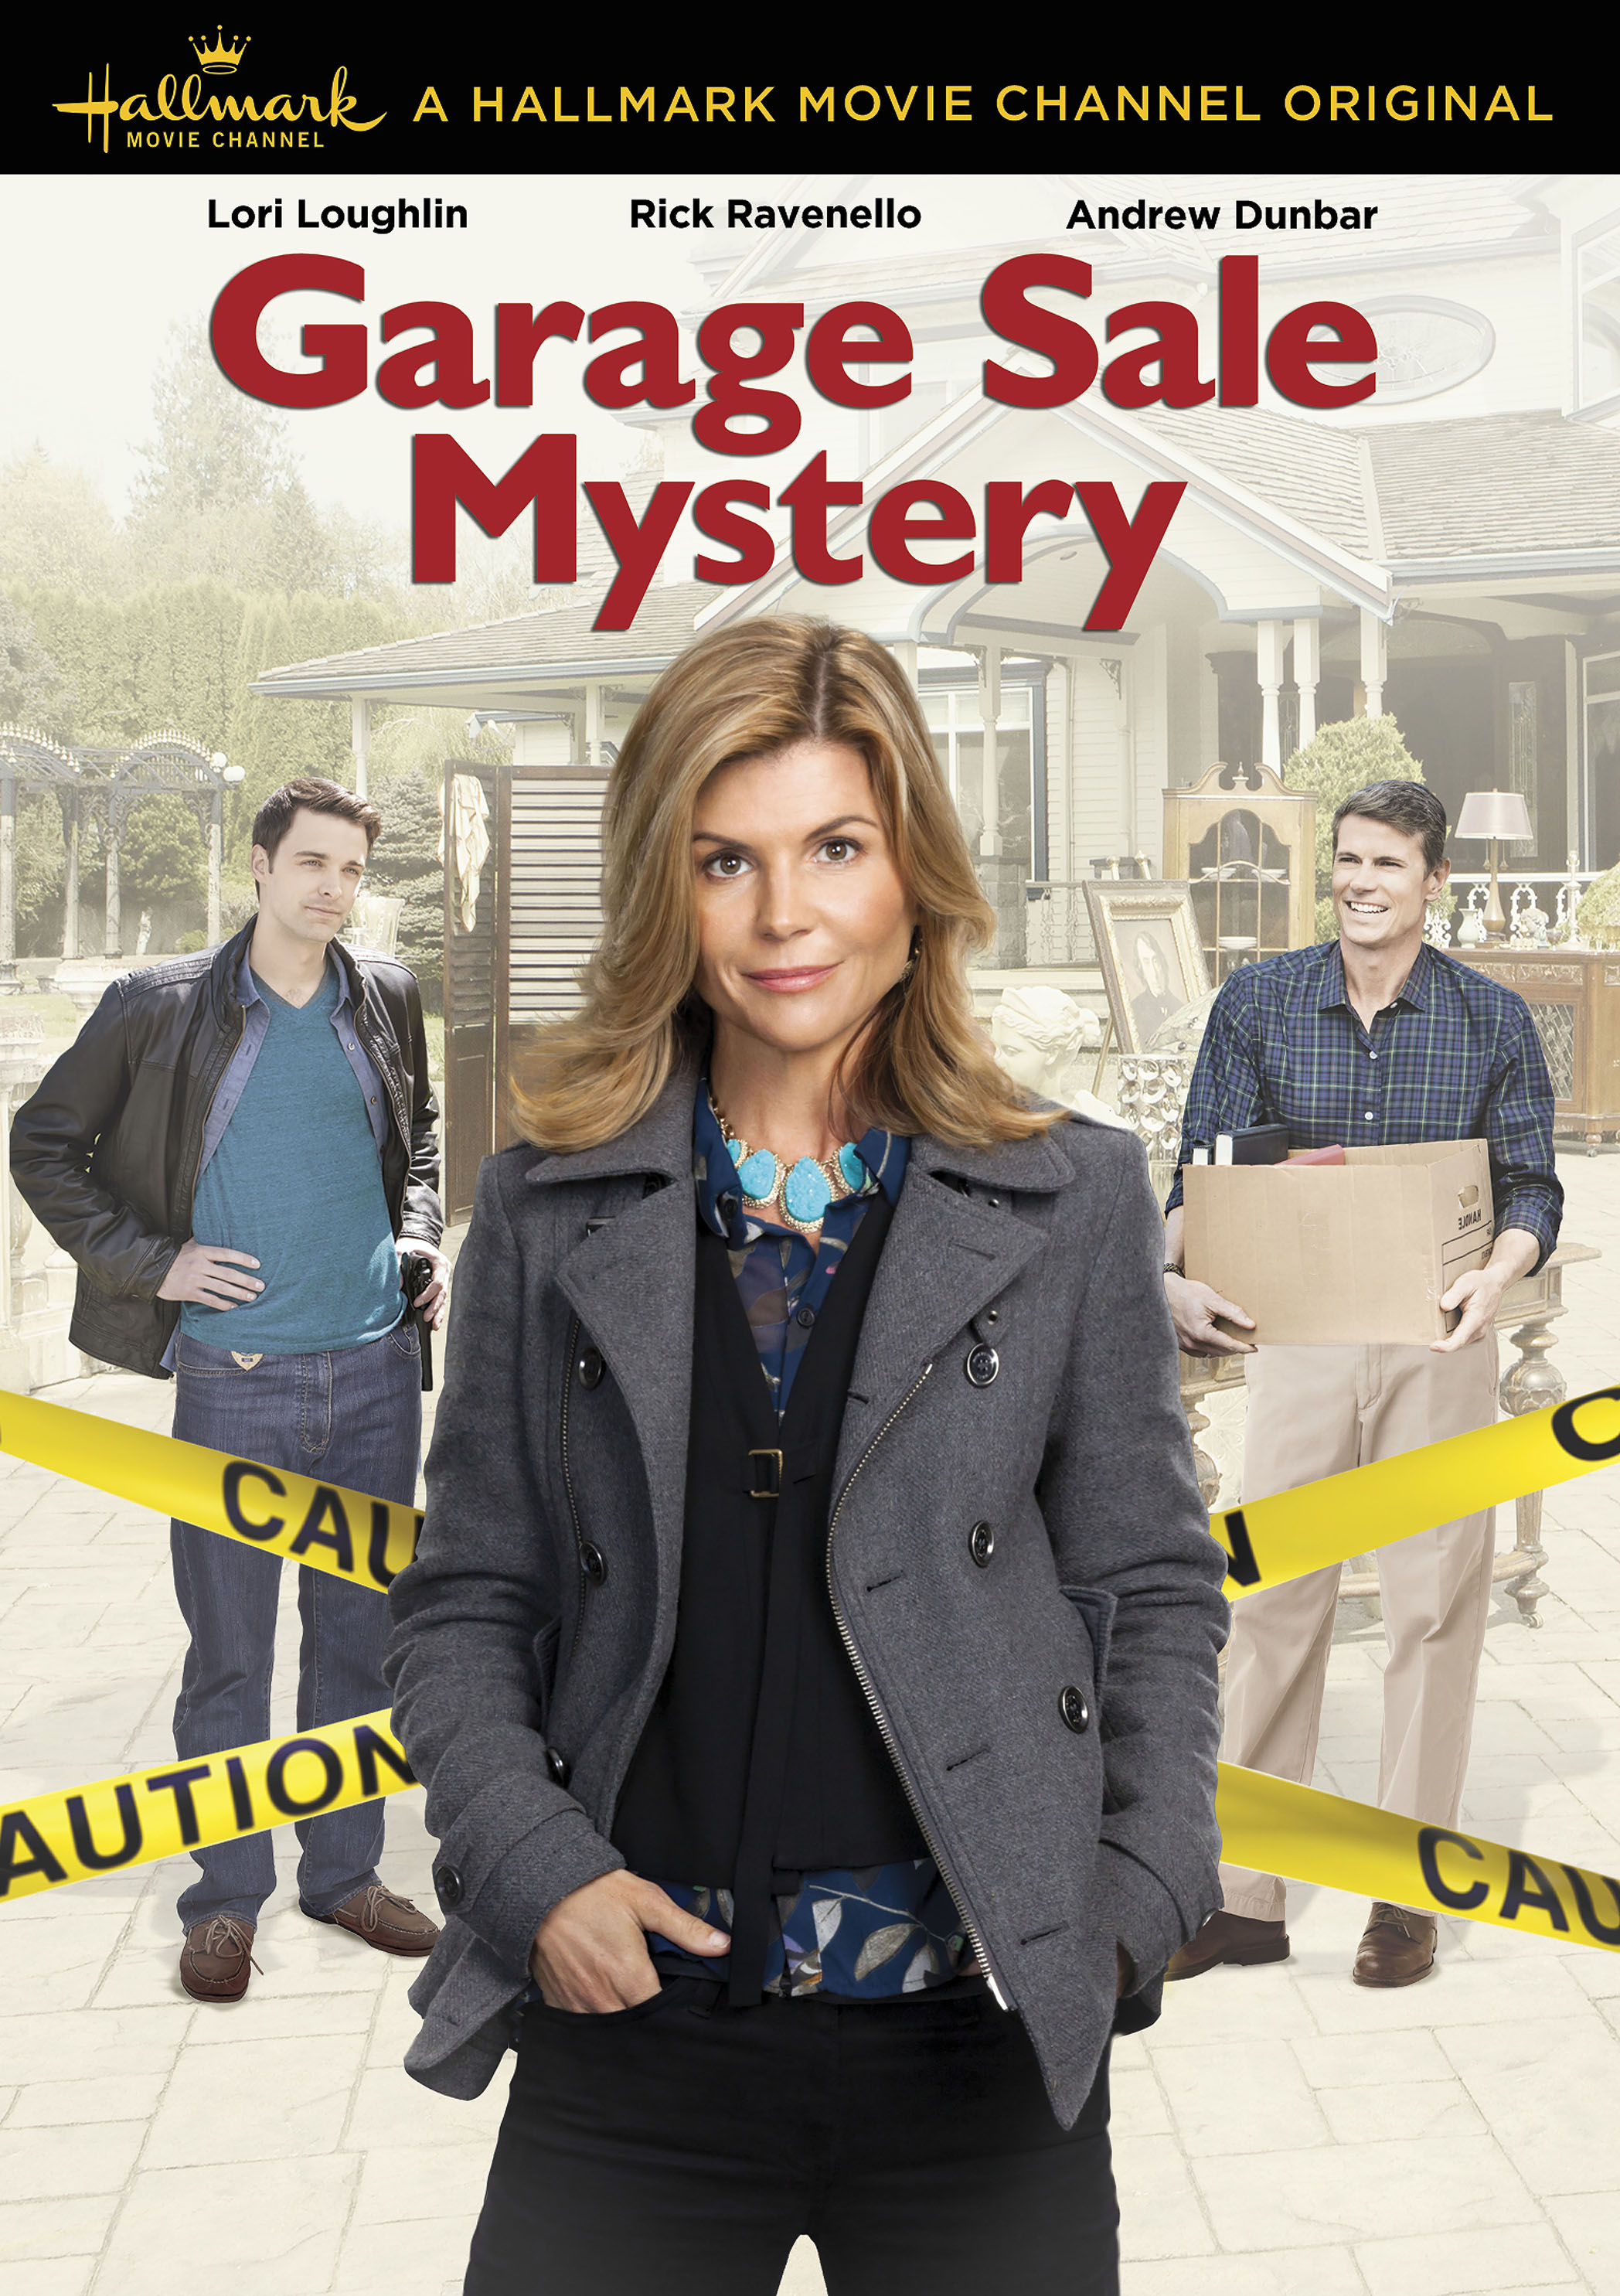 Garage Sale Mystery - Hallmark - Cinedigm Entertainment